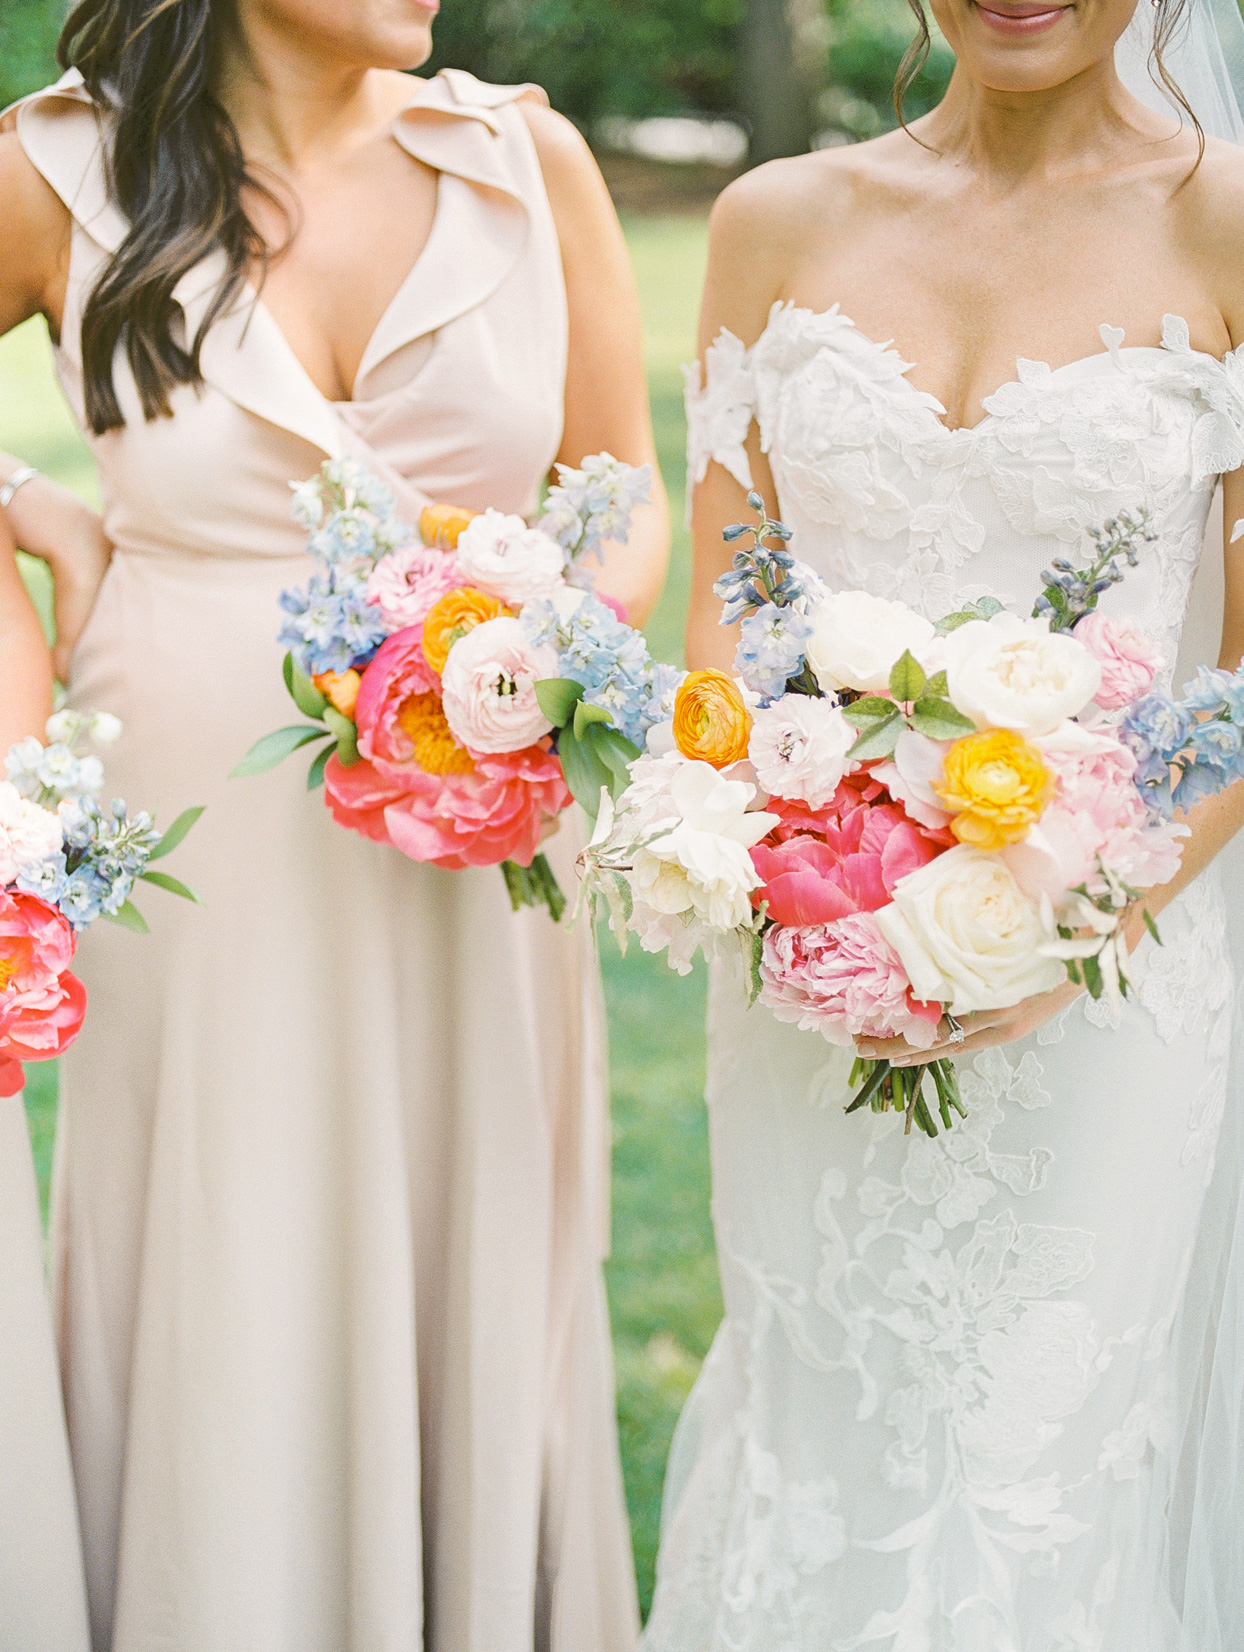 bouquets of pink peonies, white roses, and yellow ranunculus